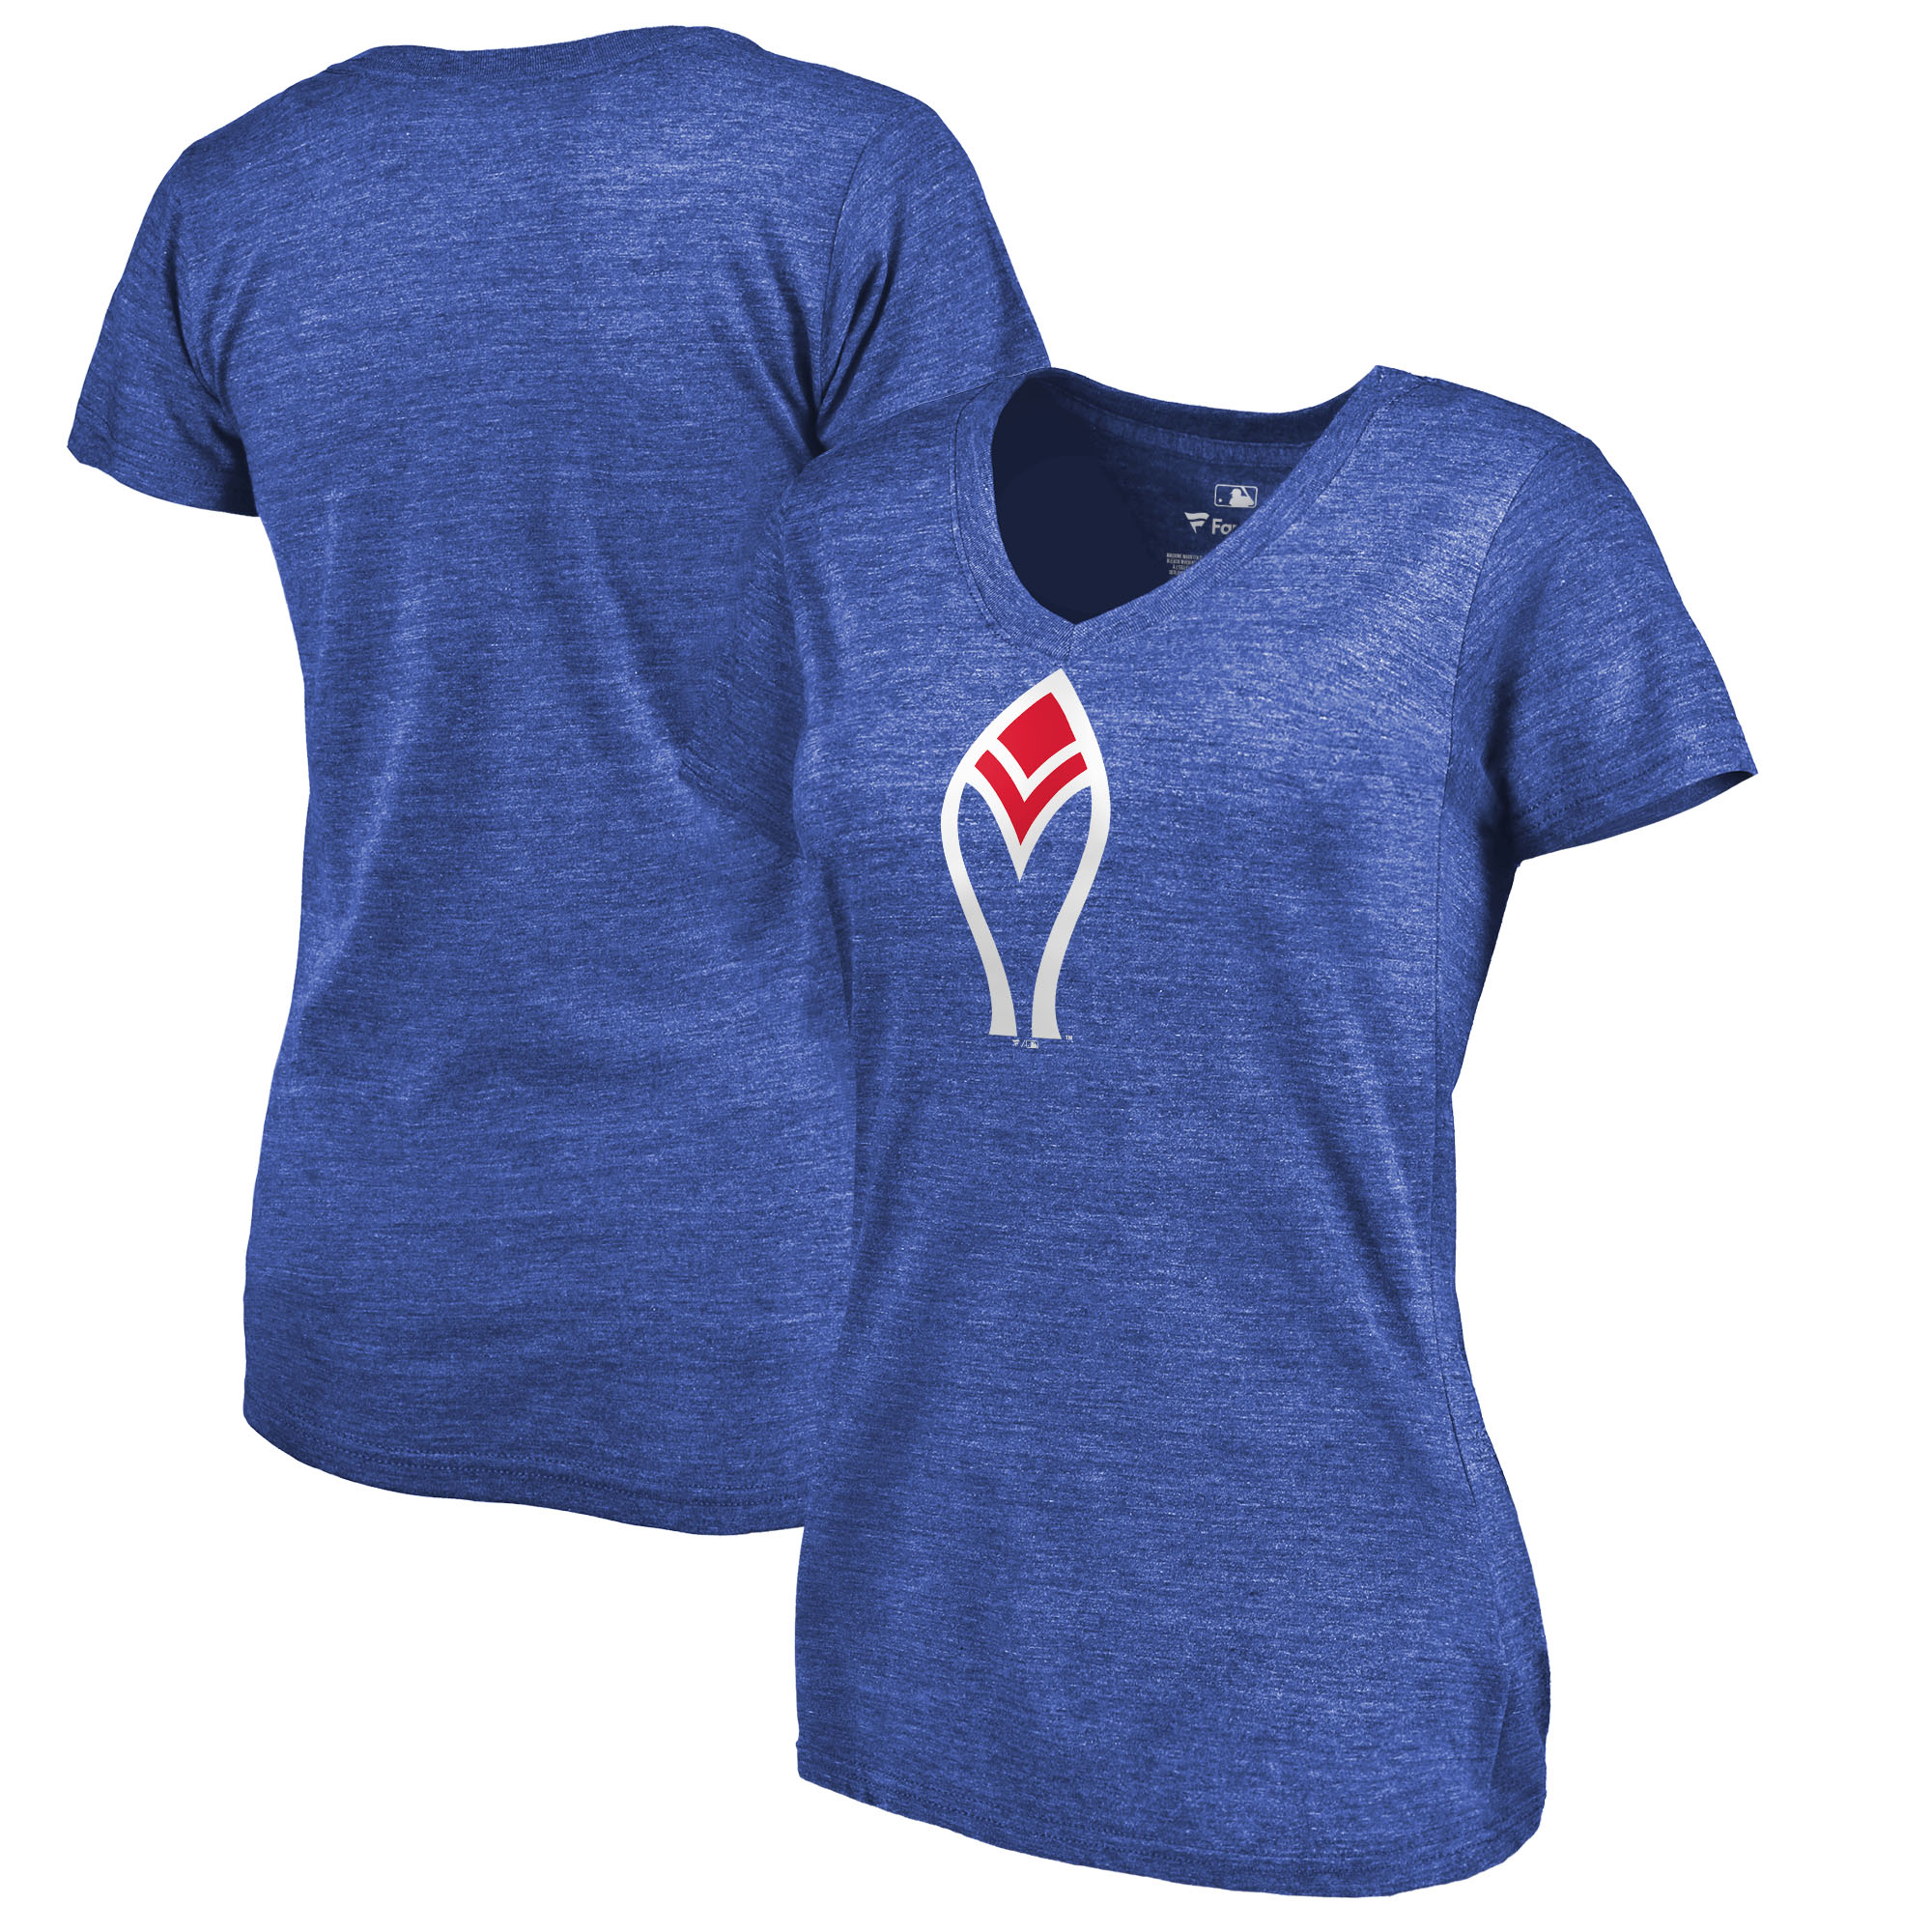 Atlanta Braves Fanatics Branded Women's Cooperstown Collection Forbes Tri-Blend V-Neck T-Shirt - Heathered Royal